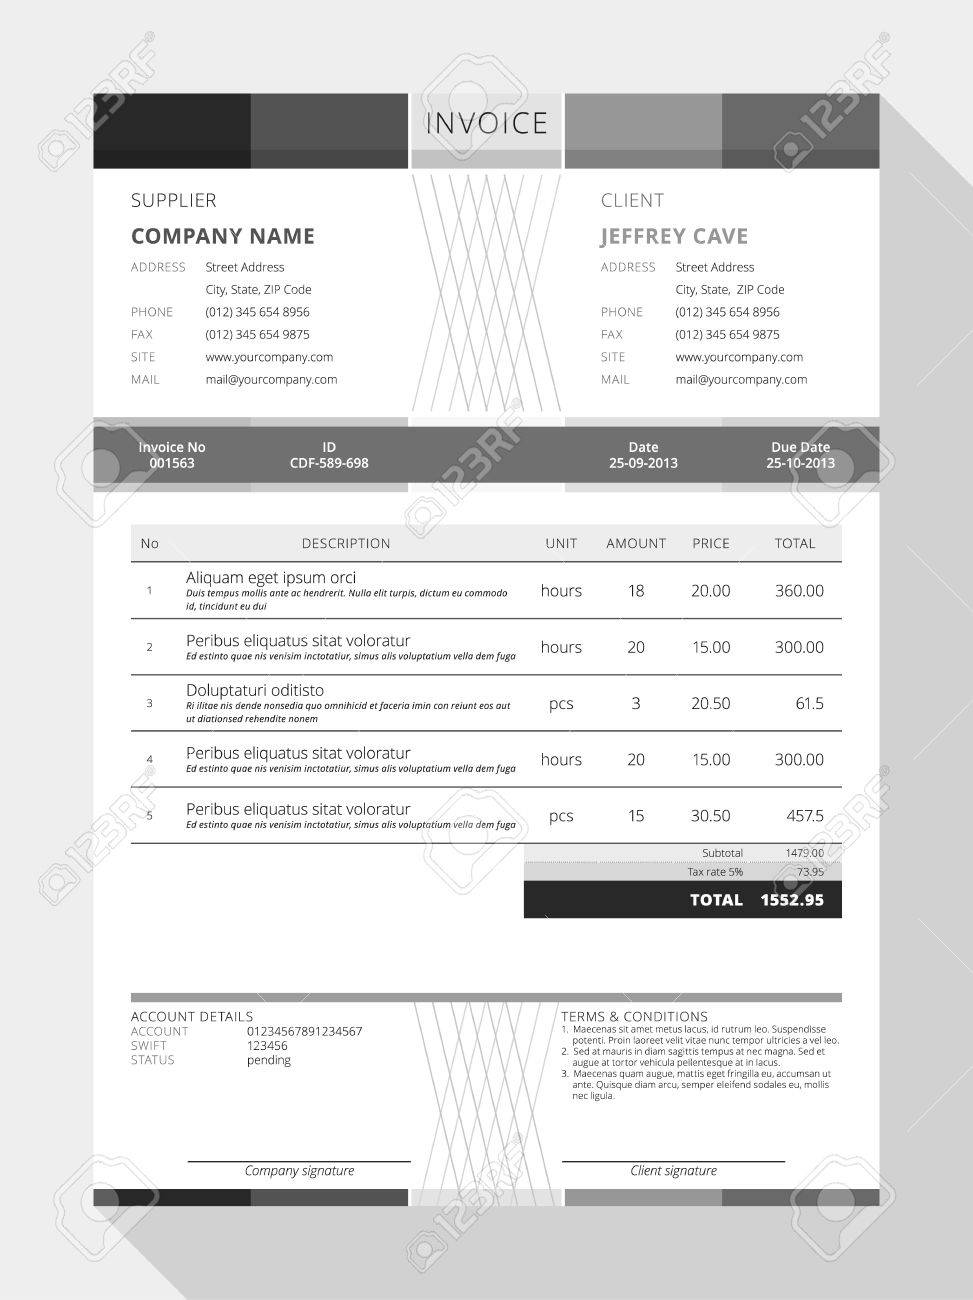 Maidofhonortoastus  Ravishing Design An Invoice  Professional Graphic Design Invoice  With Exquisite Vector Customizable Invoice Form Template Design Vector   Design An Invoice With Breathtaking Anyx Invoice Also How To Send An Invoice In Addition What Is A Vat Invoice And Google Invoice Template As Well As Anyax Invoice Additionally Basic Invoice Template From Happytomco With Maidofhonortoastus  Exquisite Design An Invoice  Professional Graphic Design Invoice  With Breathtaking Vector Customizable Invoice Form Template Design Vector   Design An Invoice And Ravishing Anyx Invoice Also How To Send An Invoice In Addition What Is A Vat Invoice From Happytomco